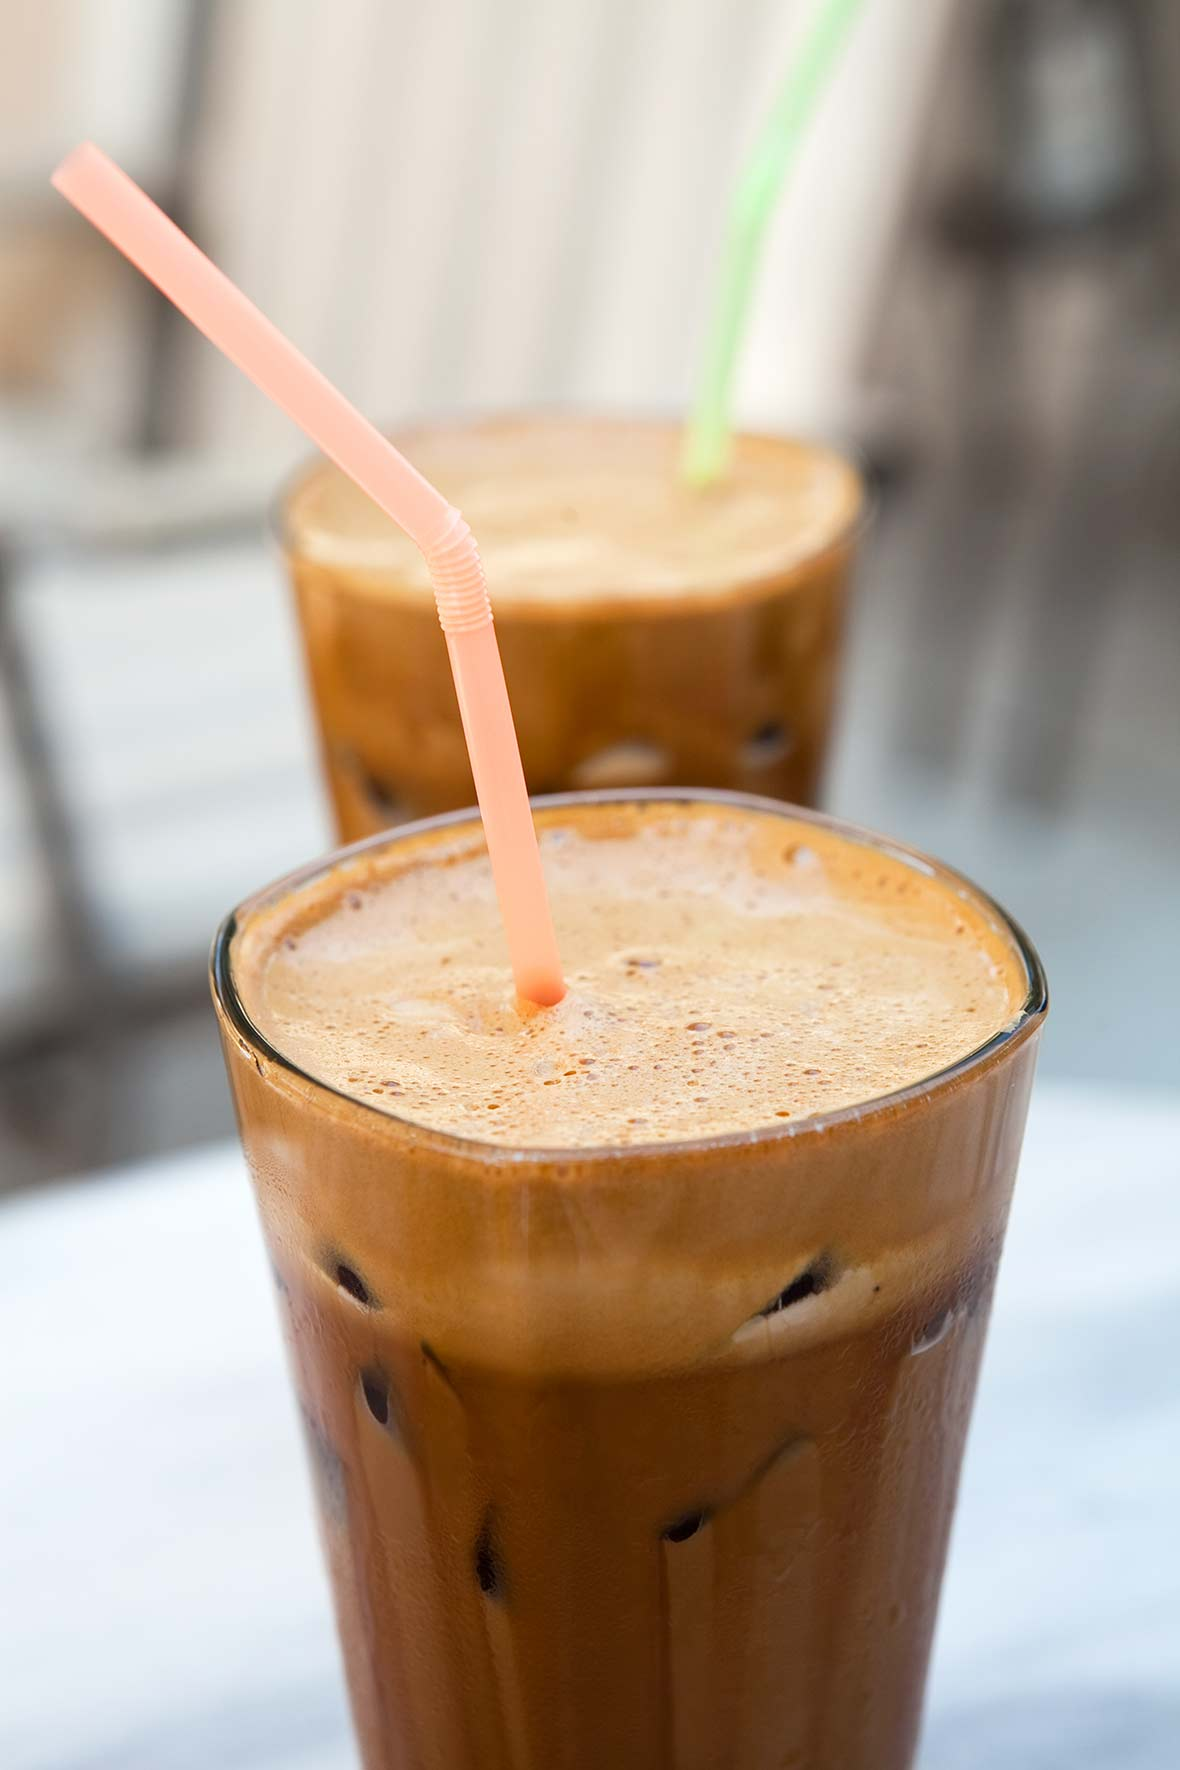 Two tall glasses filled with Greek-style frappe, with colorful straws standing up in them.